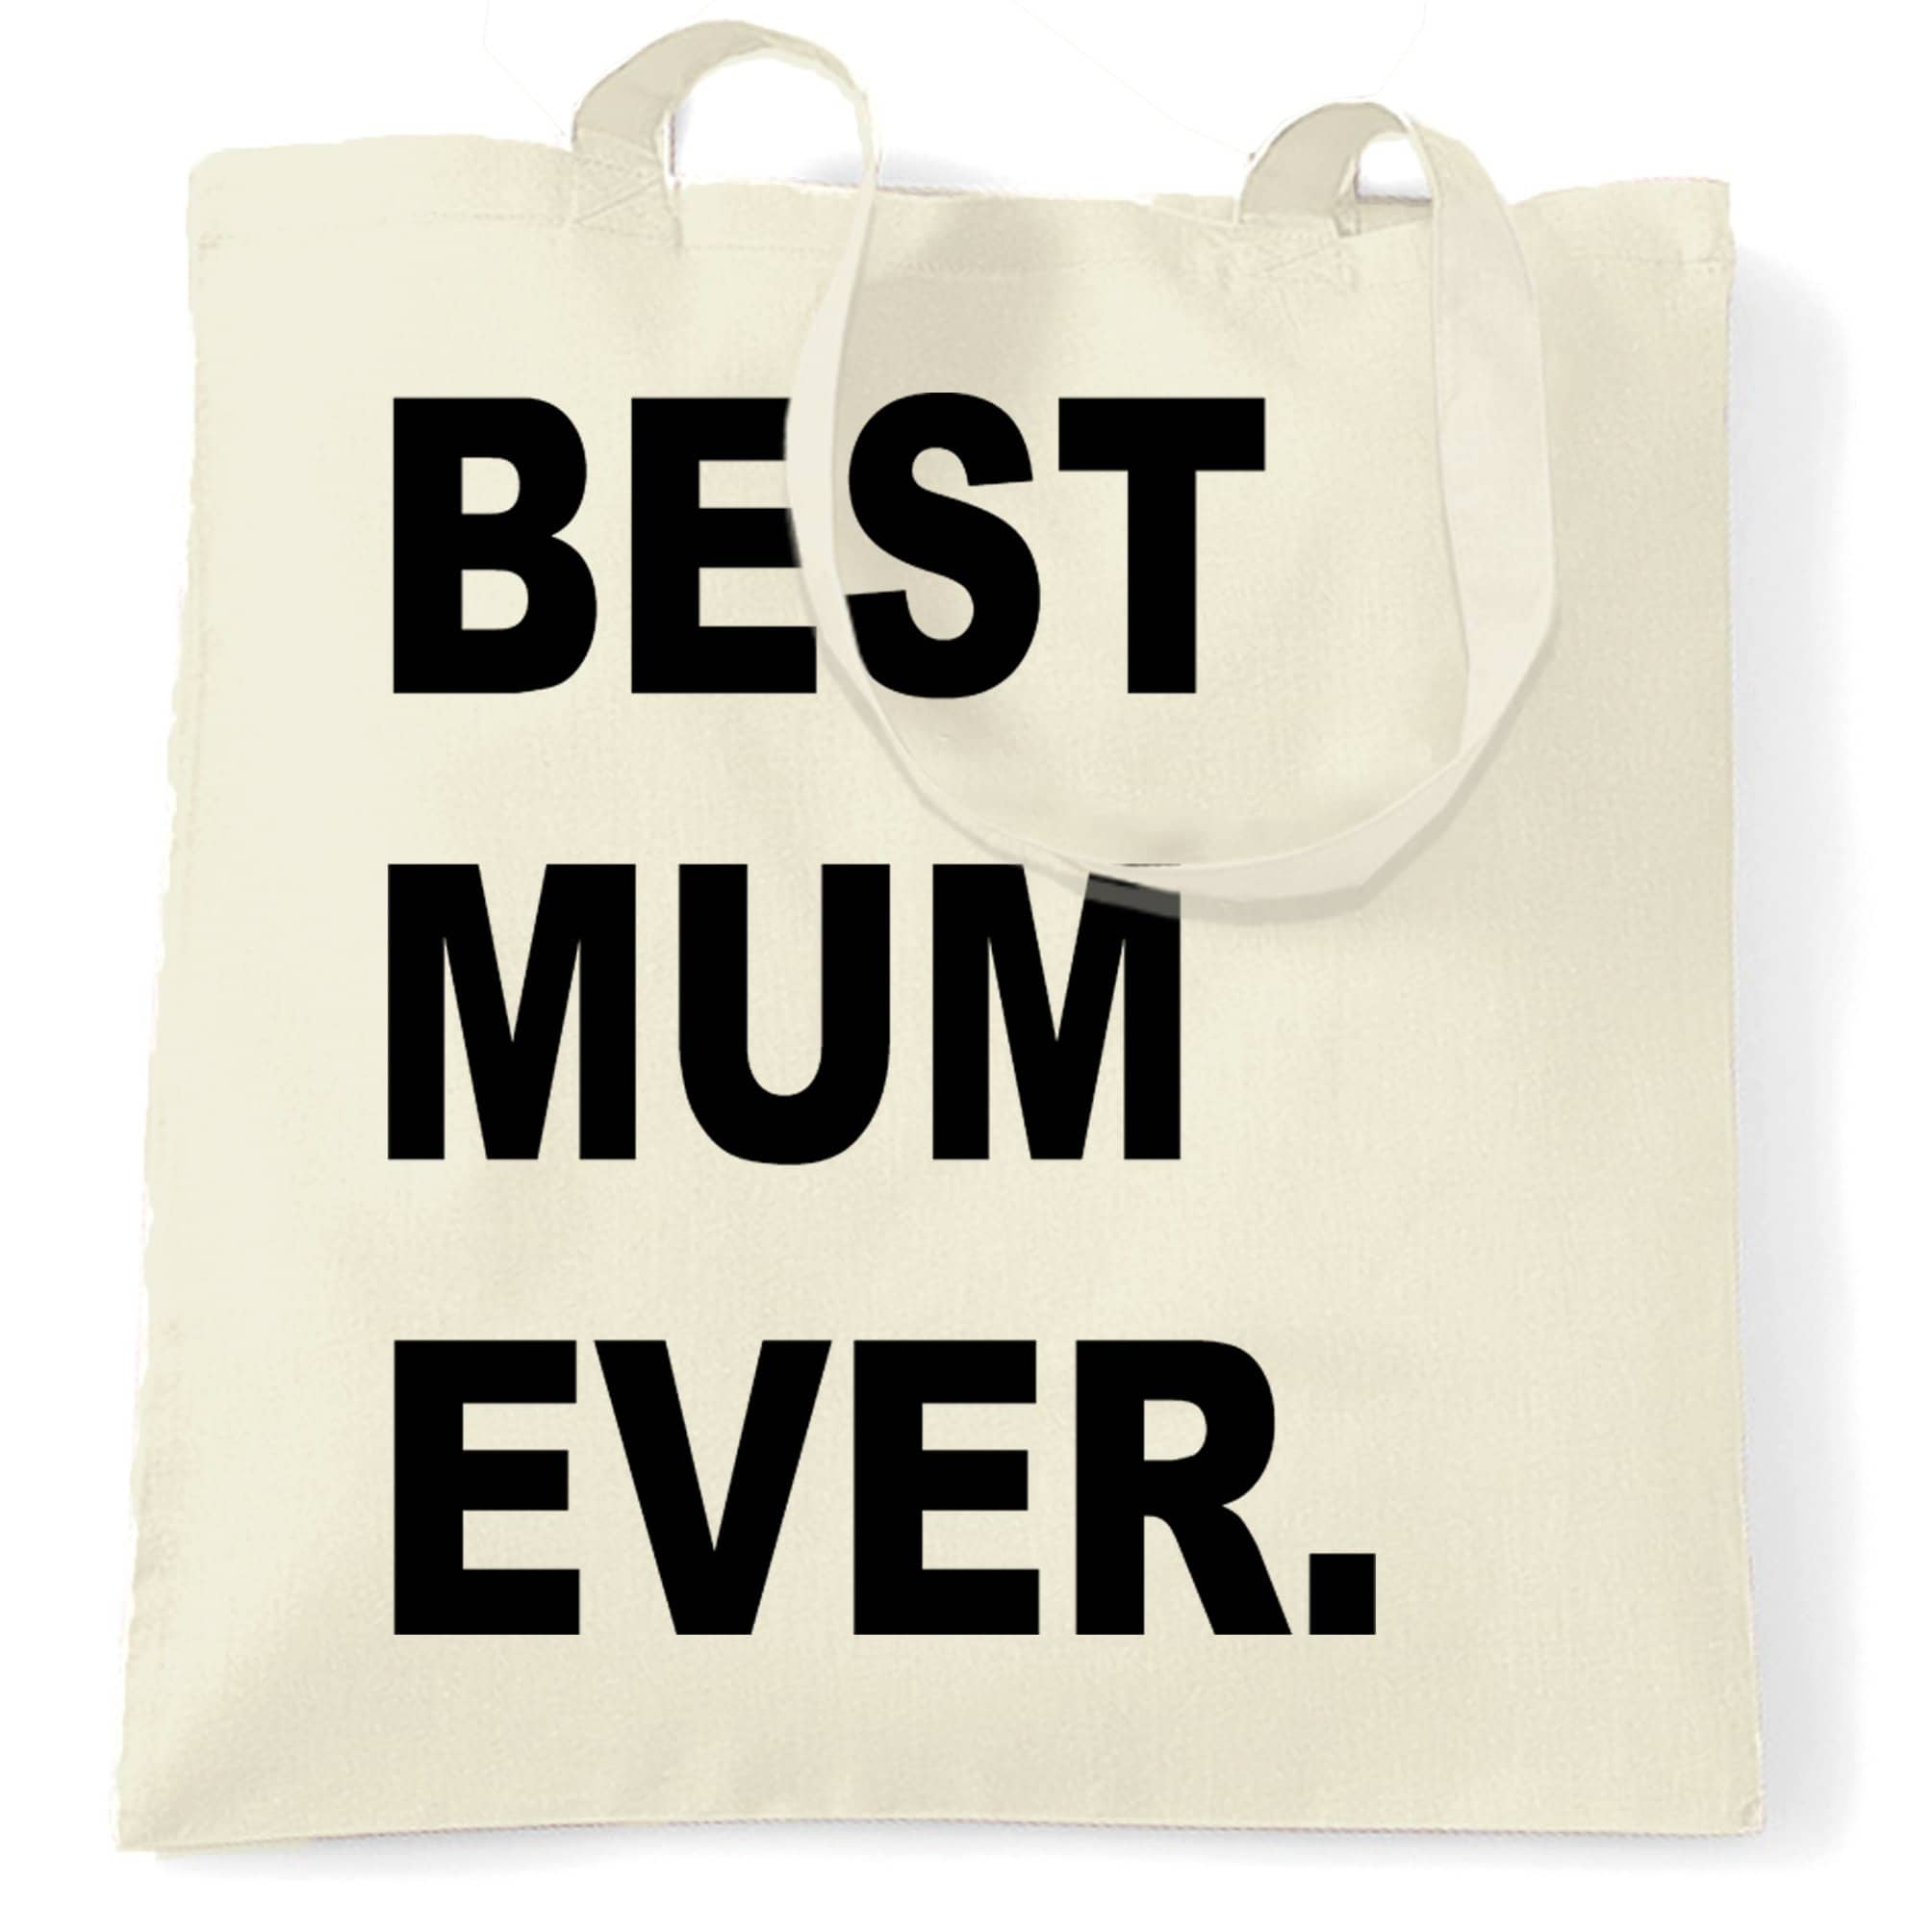 Best Mum Ever Tote Bag Parent Family Slogan